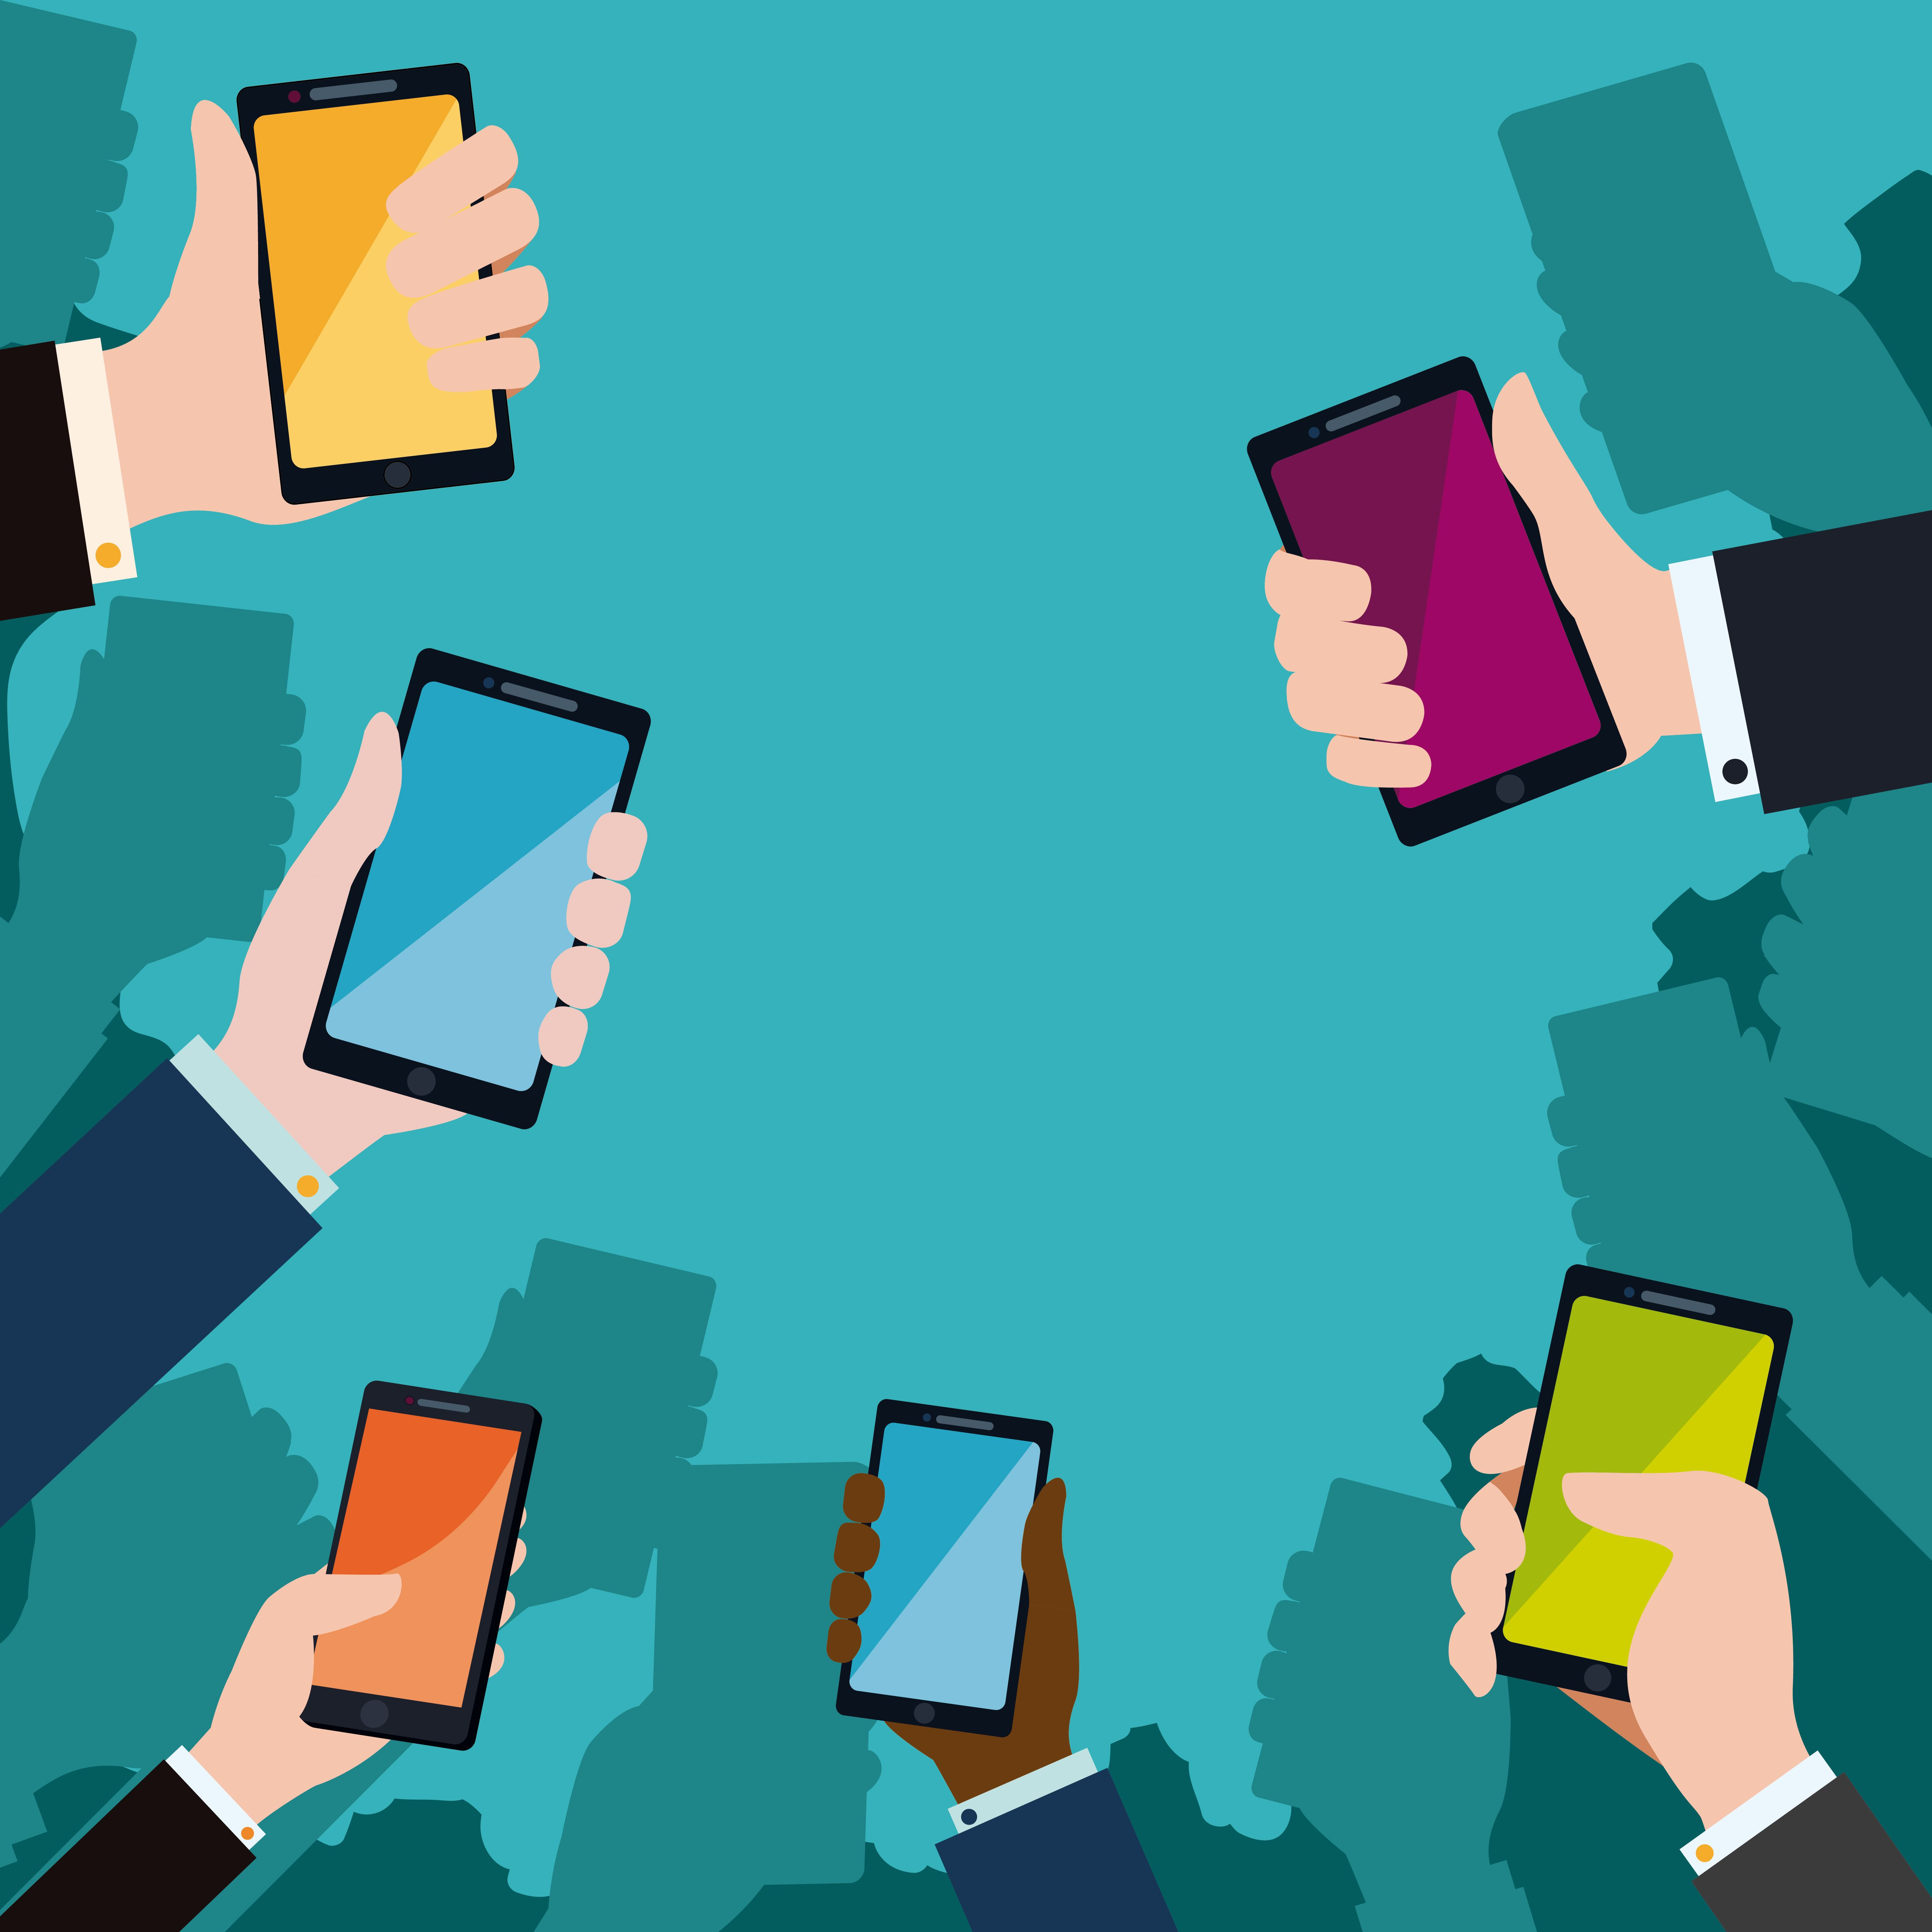 Mobile appdevelopment is the way to setup smart and